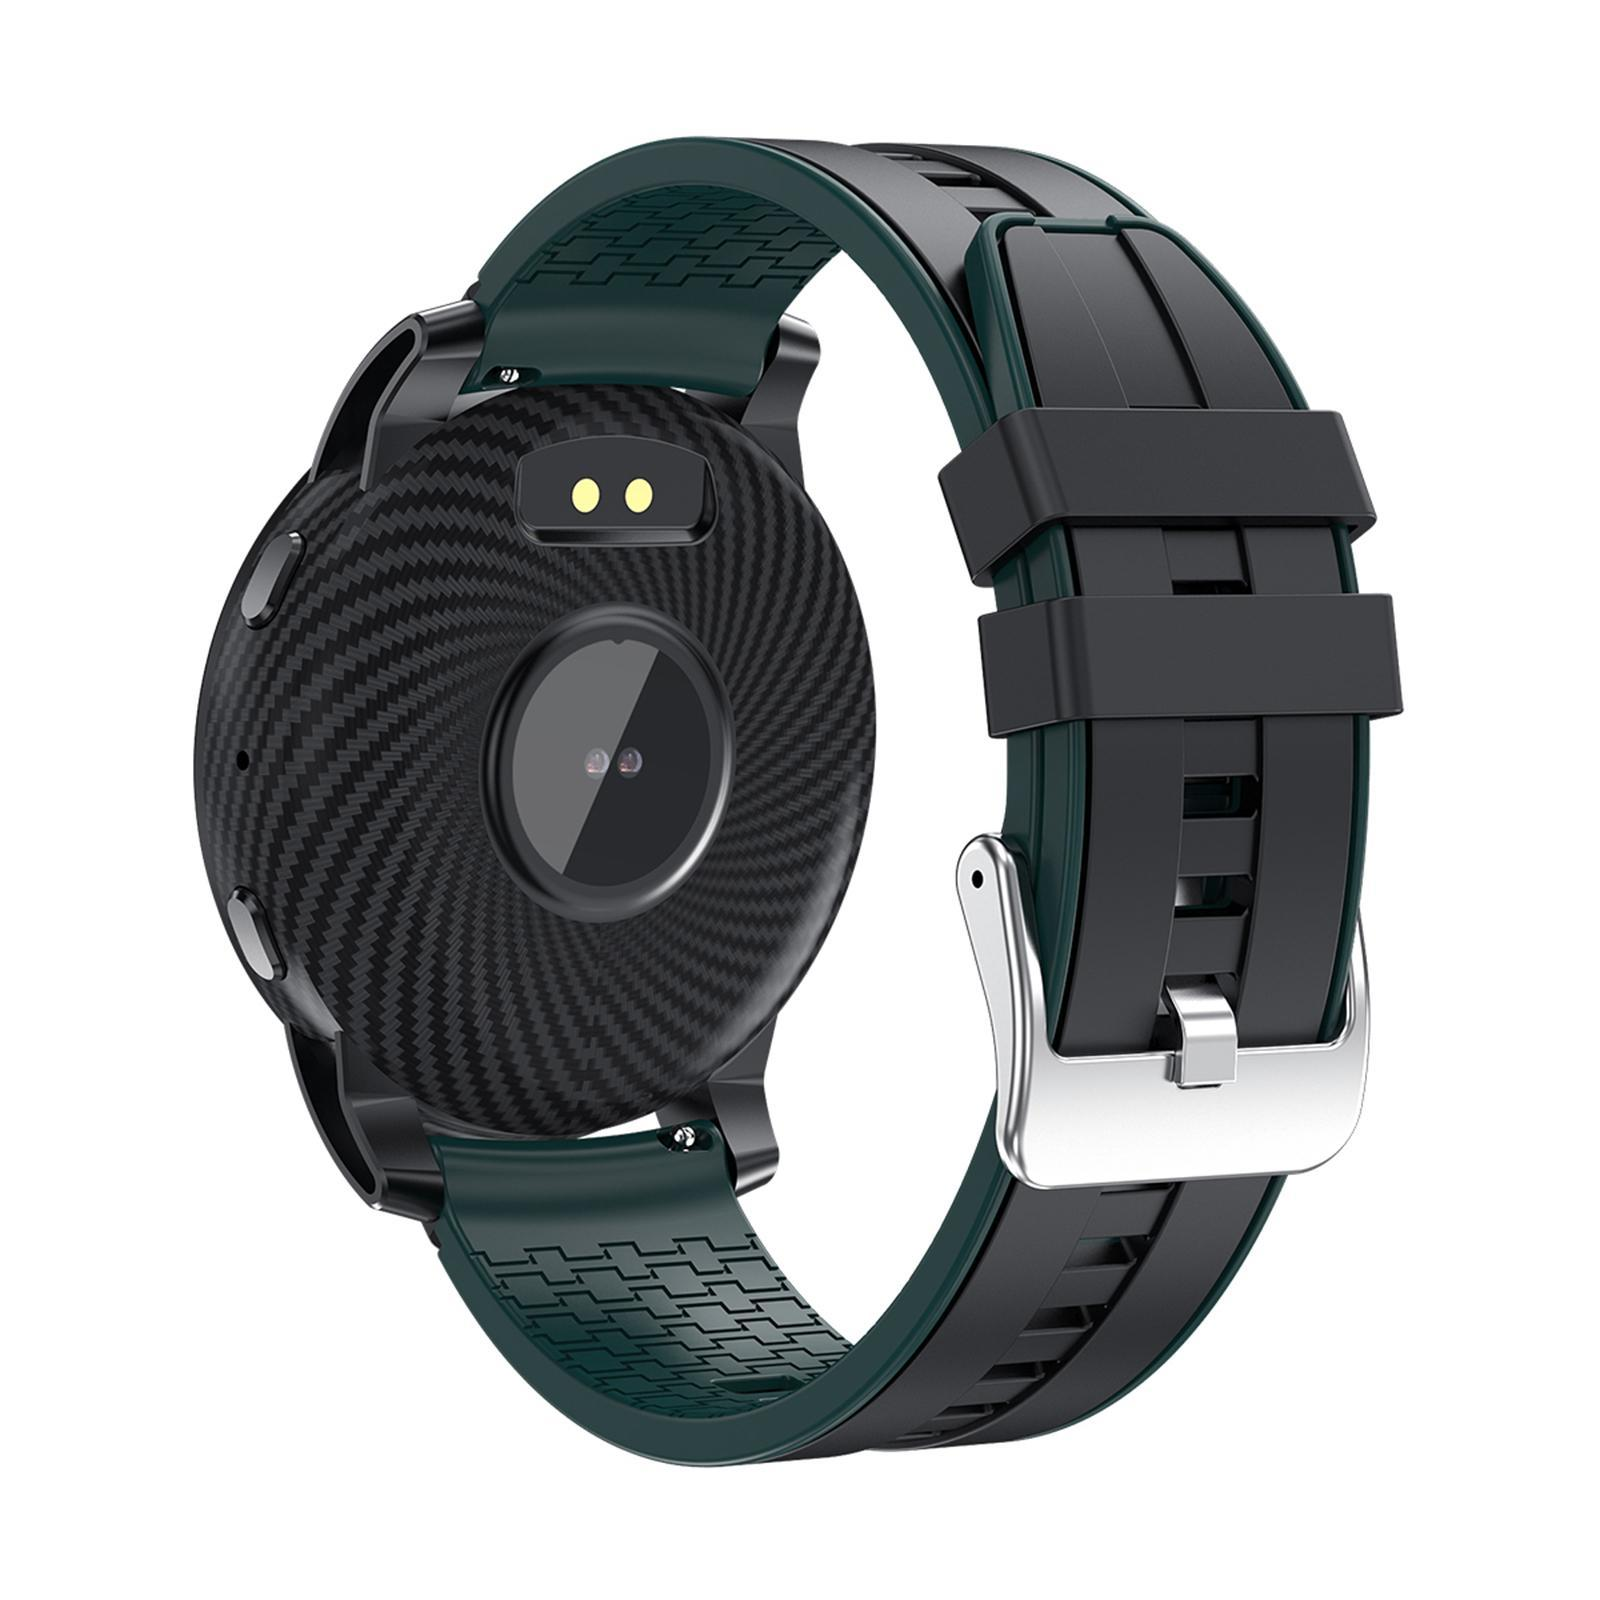 Hommes-Smart-Watch-Bluetooth-Call-Fitness-Tracker-frequence-cardiaque-sommeil miniature 47